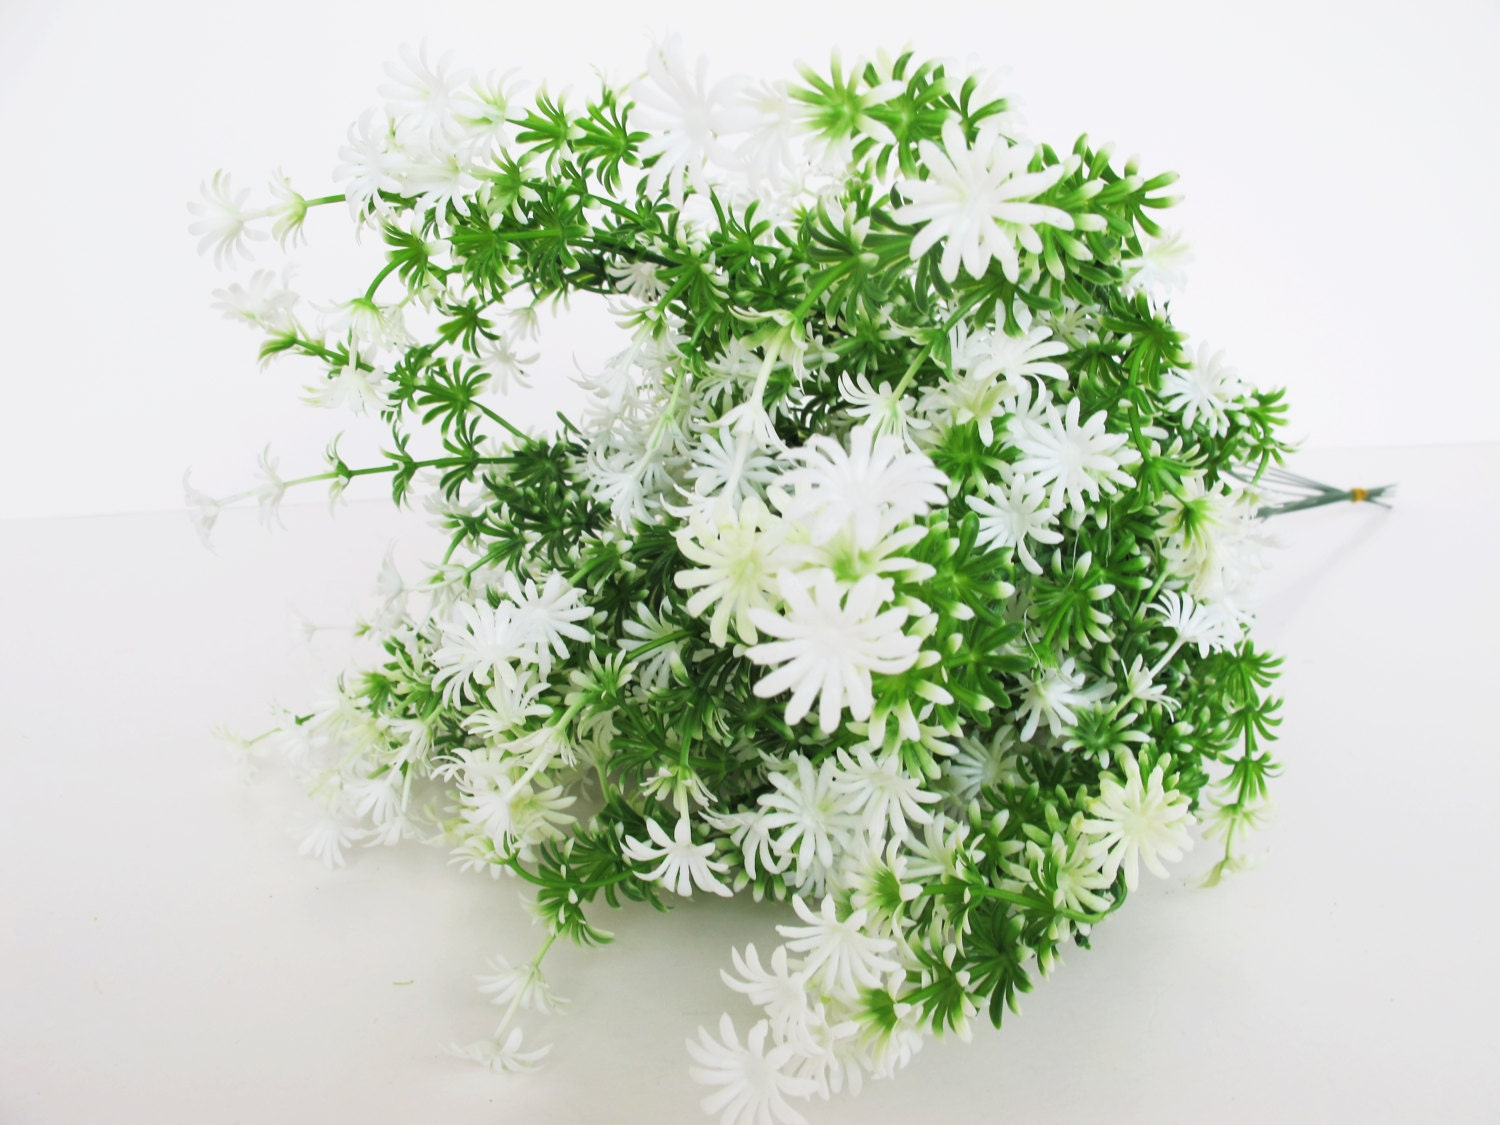 12 Plastic Mini Daisies Green White High Quality Artificial Flowers